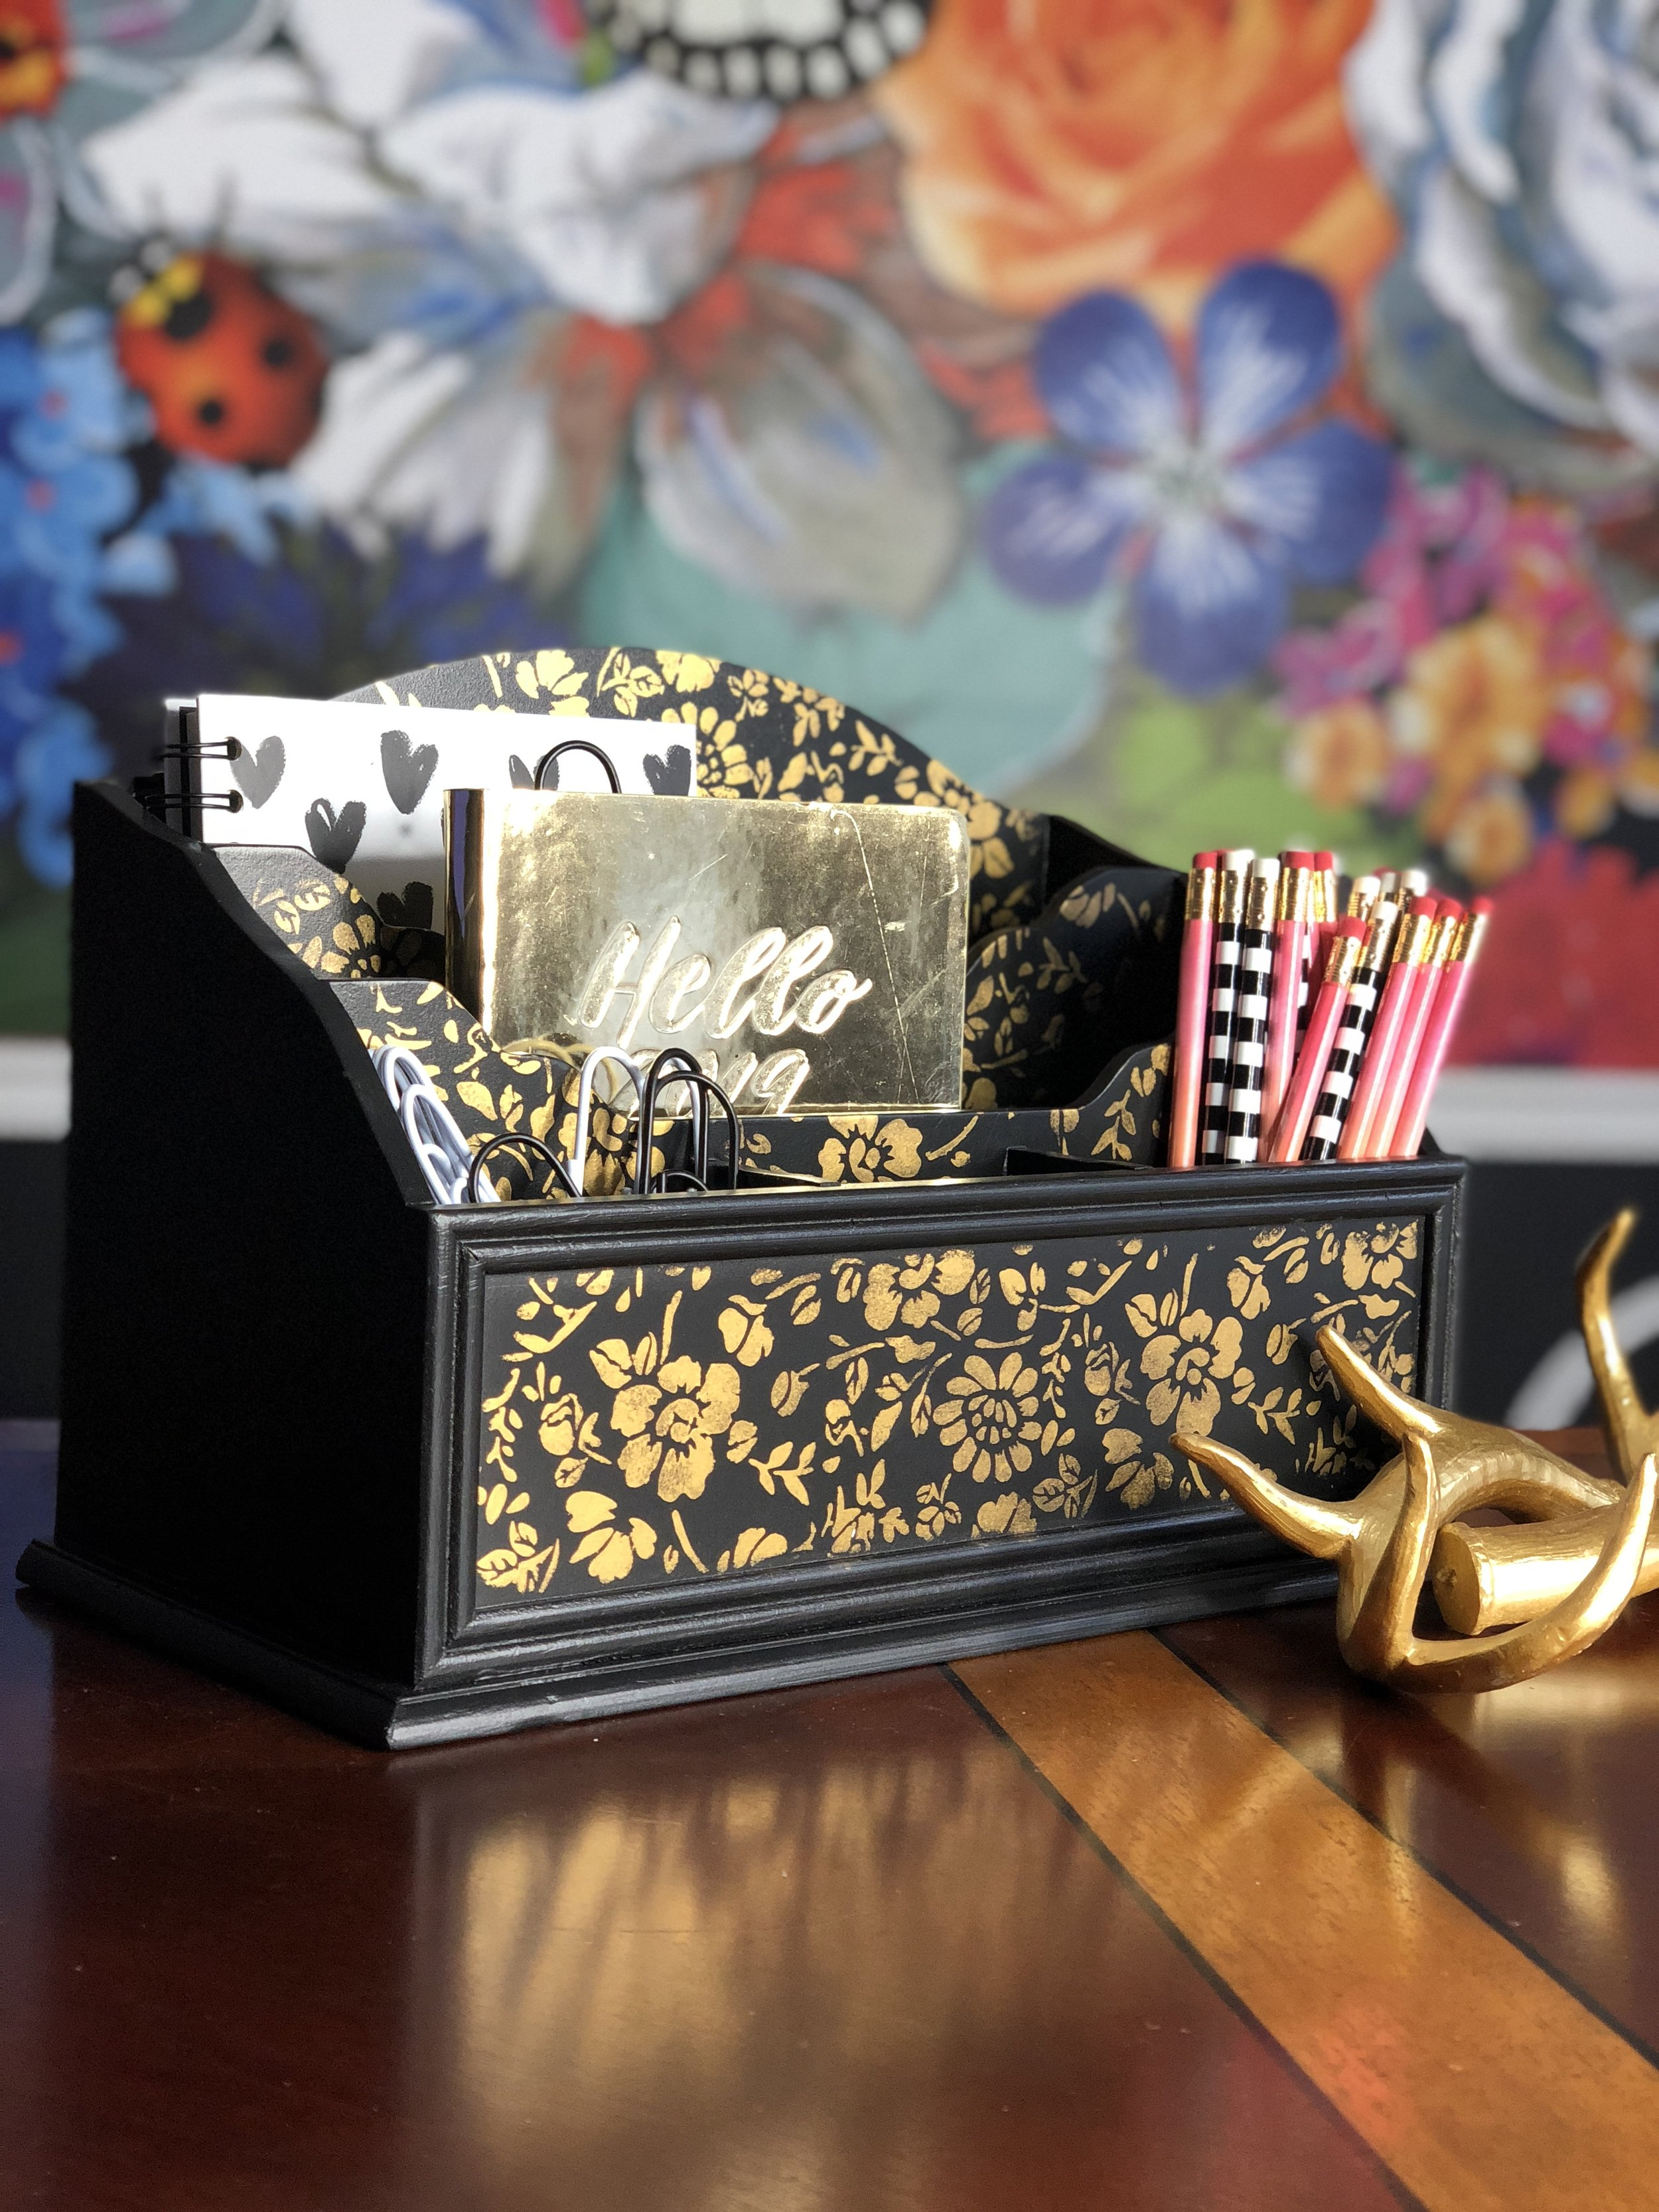 Tracey Bellion of  Tracey's Fancy  added a bit of glimmer and glam to her desk organizer using the Royal Anne Garden design. She simply added gold wax over the pattern and peeled off for the amazing reveal!